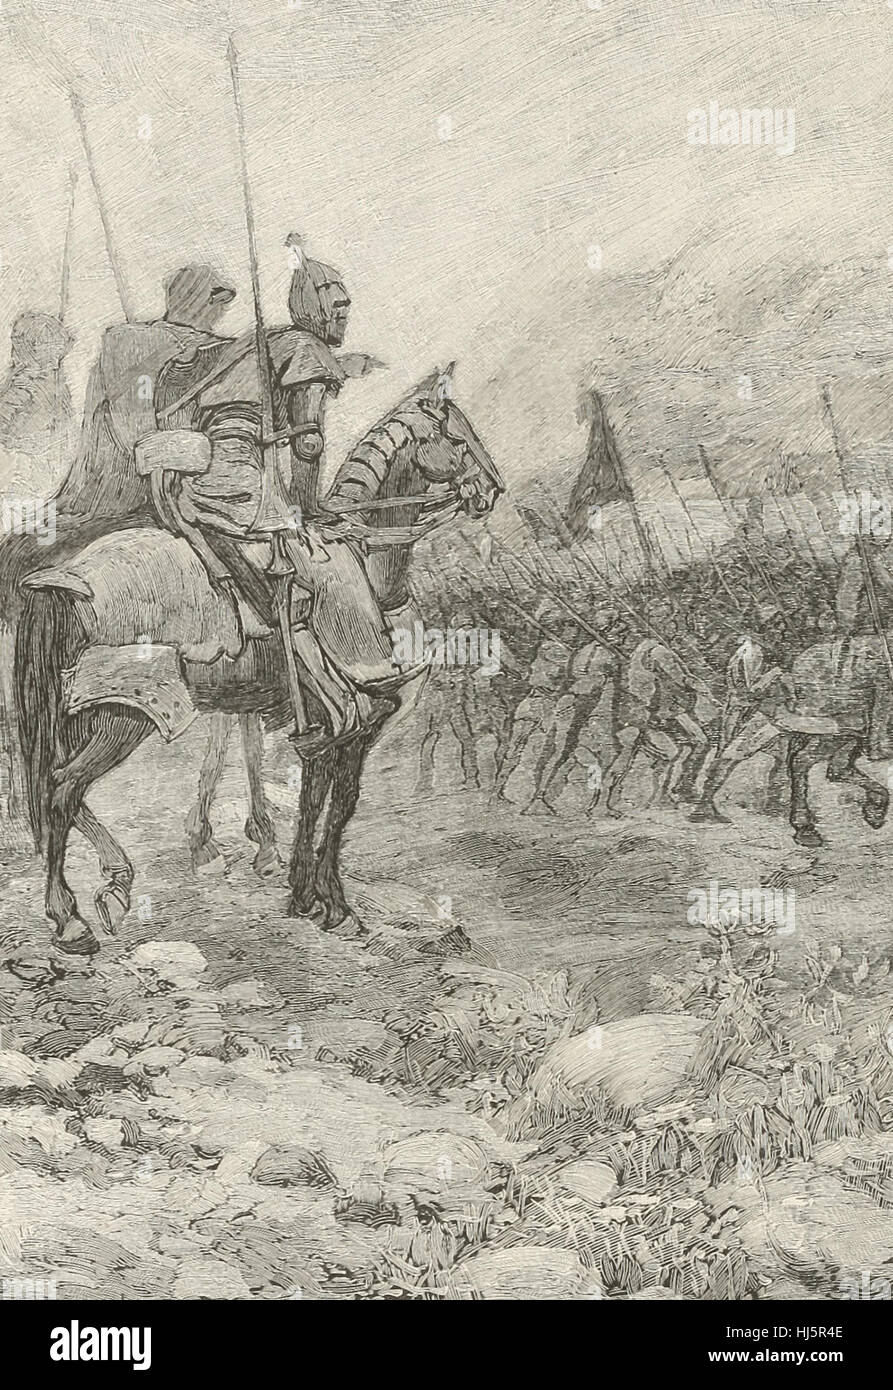 The Three Knights reconnoitiring the Flemings in the Mist - Stock Image